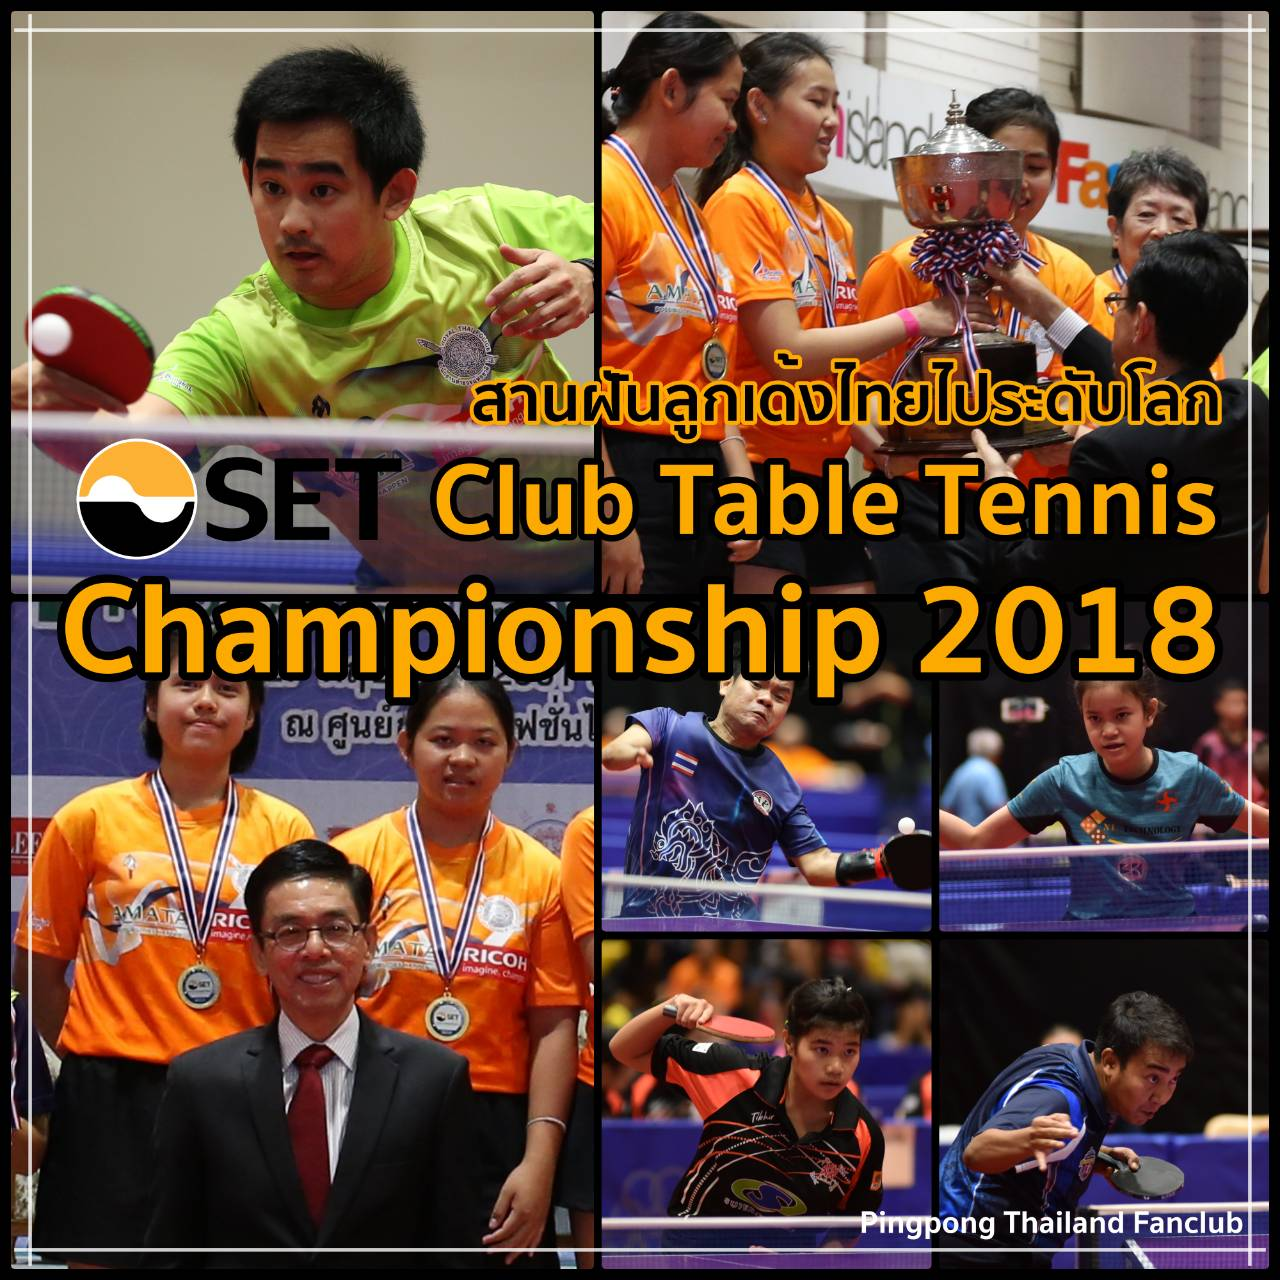 SET Club Table Tennis Championship 2018